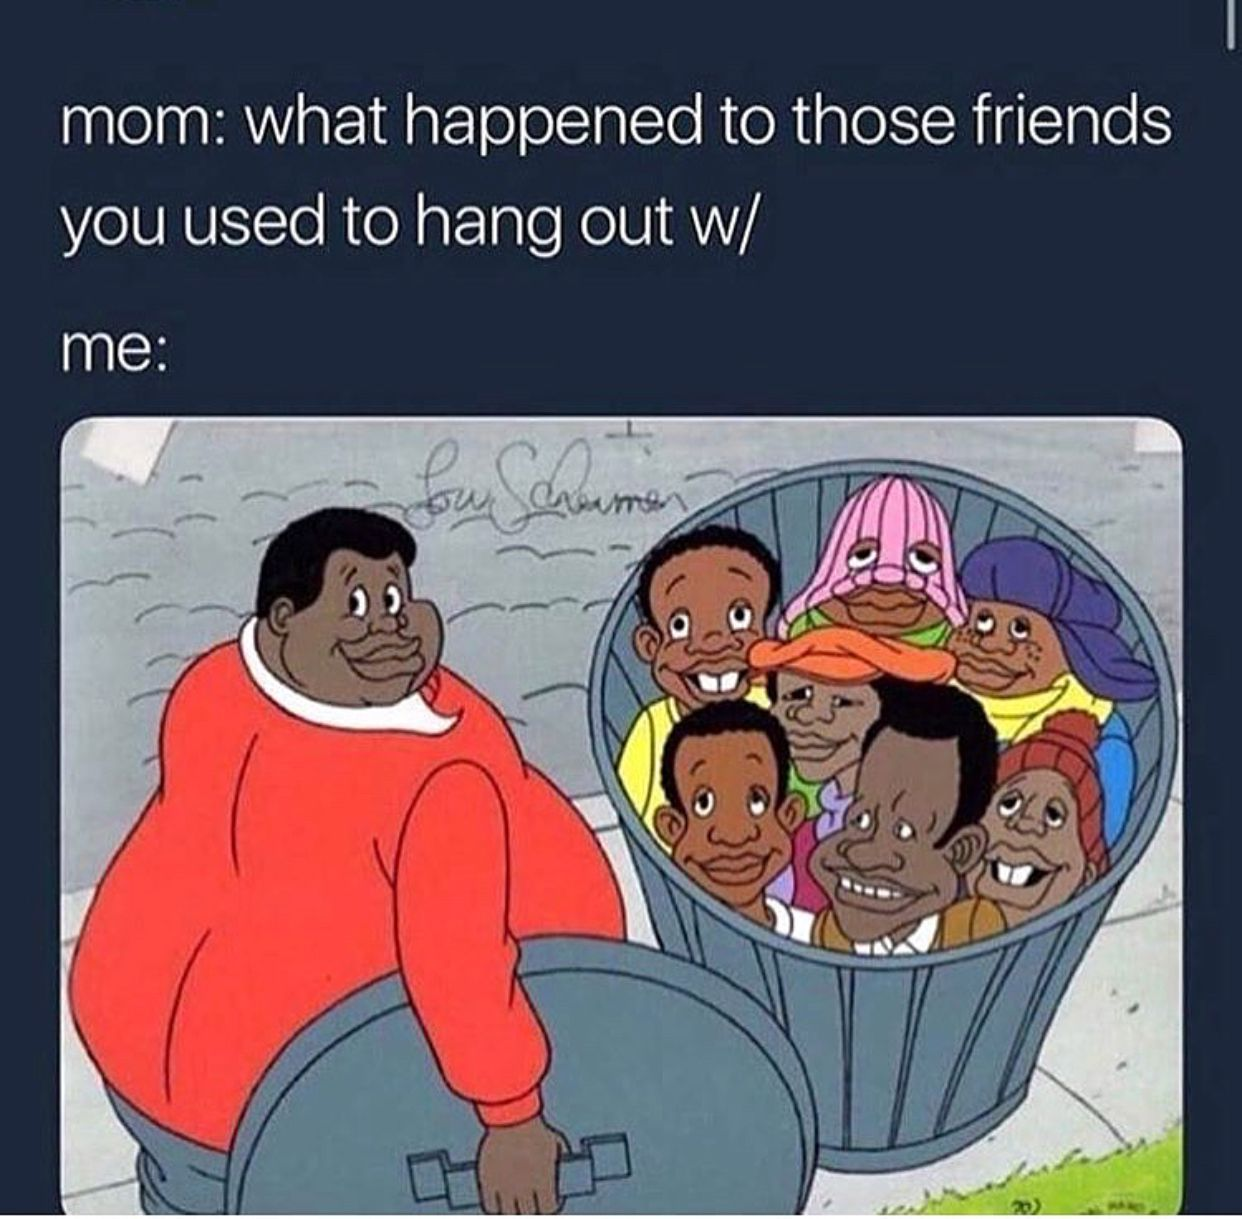 I can't tell my mom shit about my friends because she stays asking me lots of questions